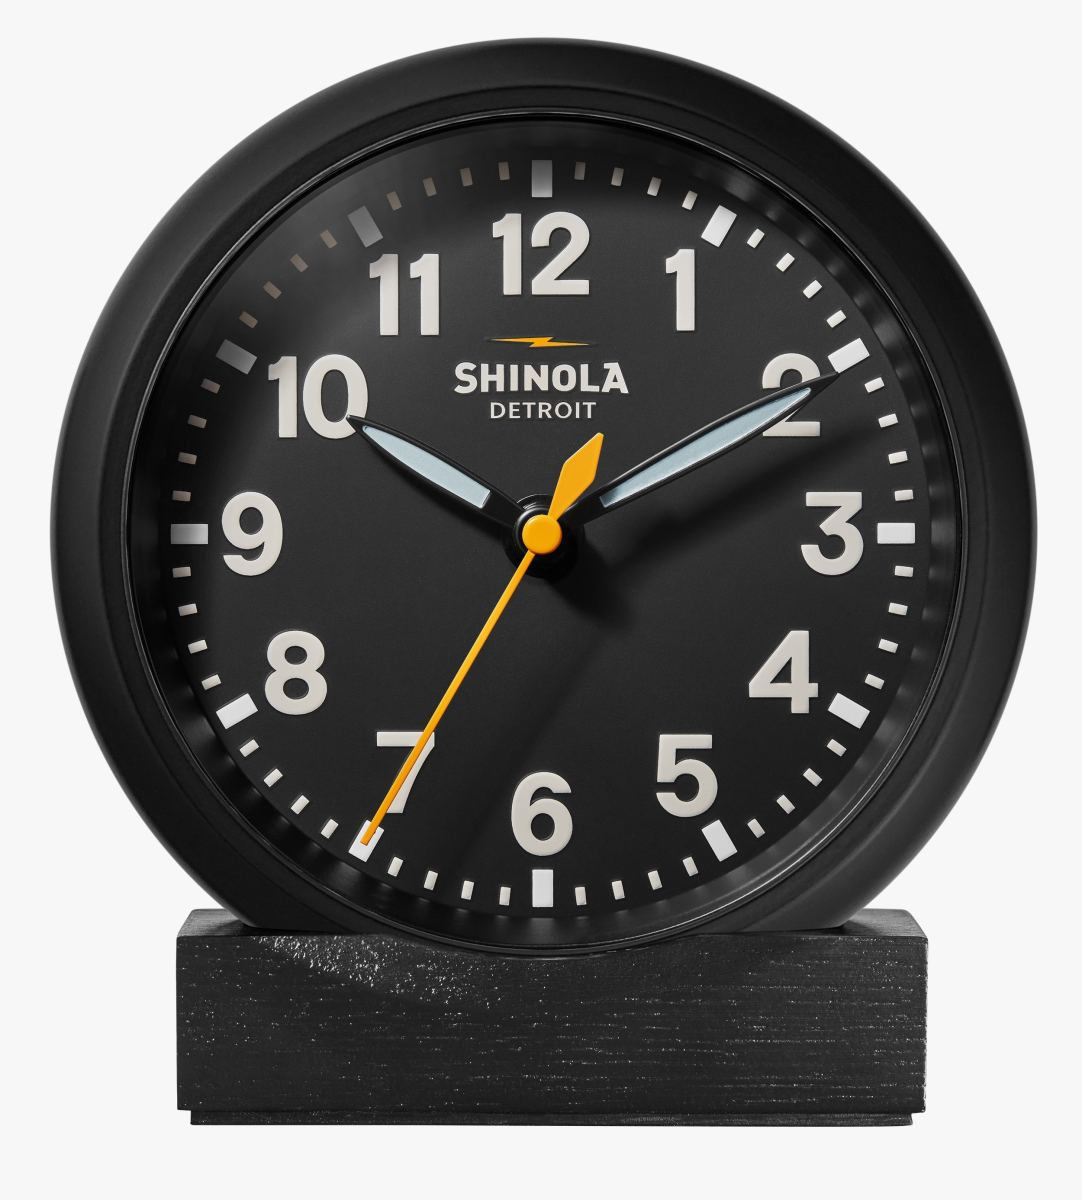 Shinola Desk Clock